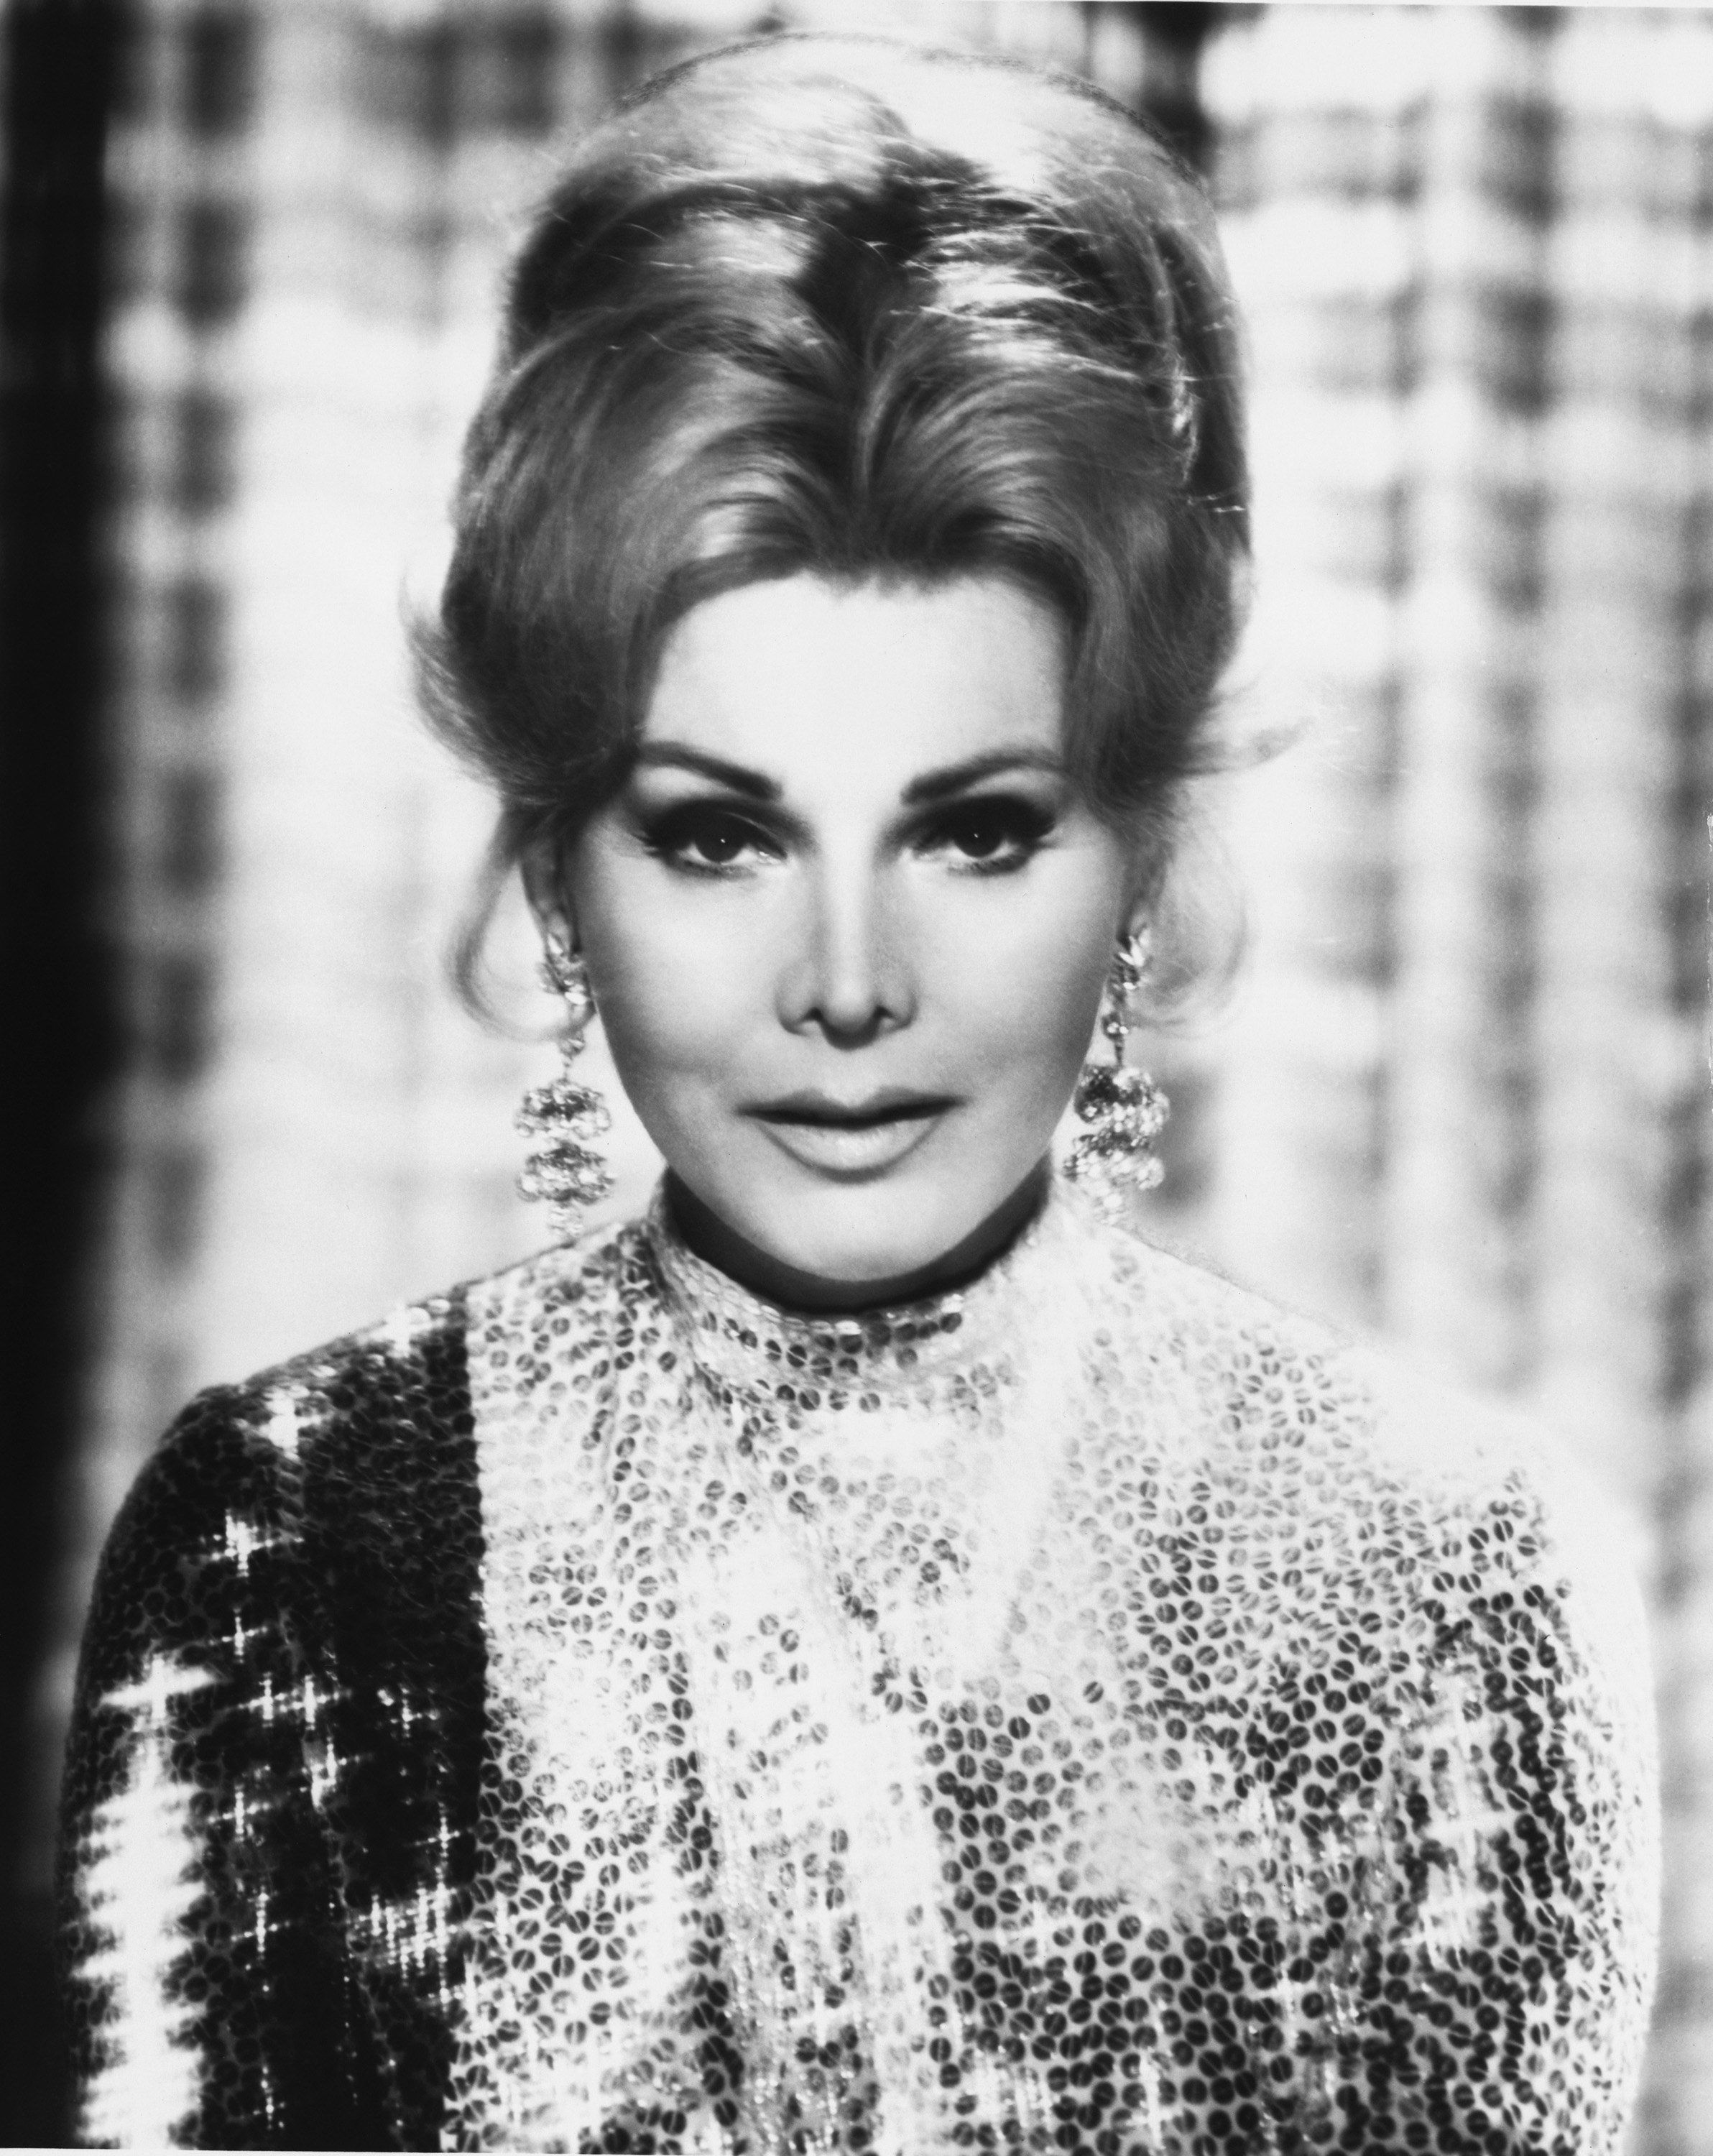 Zsa Zsa Gabor Quotes Zsa Zsa Gabor's Best Quotes About Love Marriage And Divorce